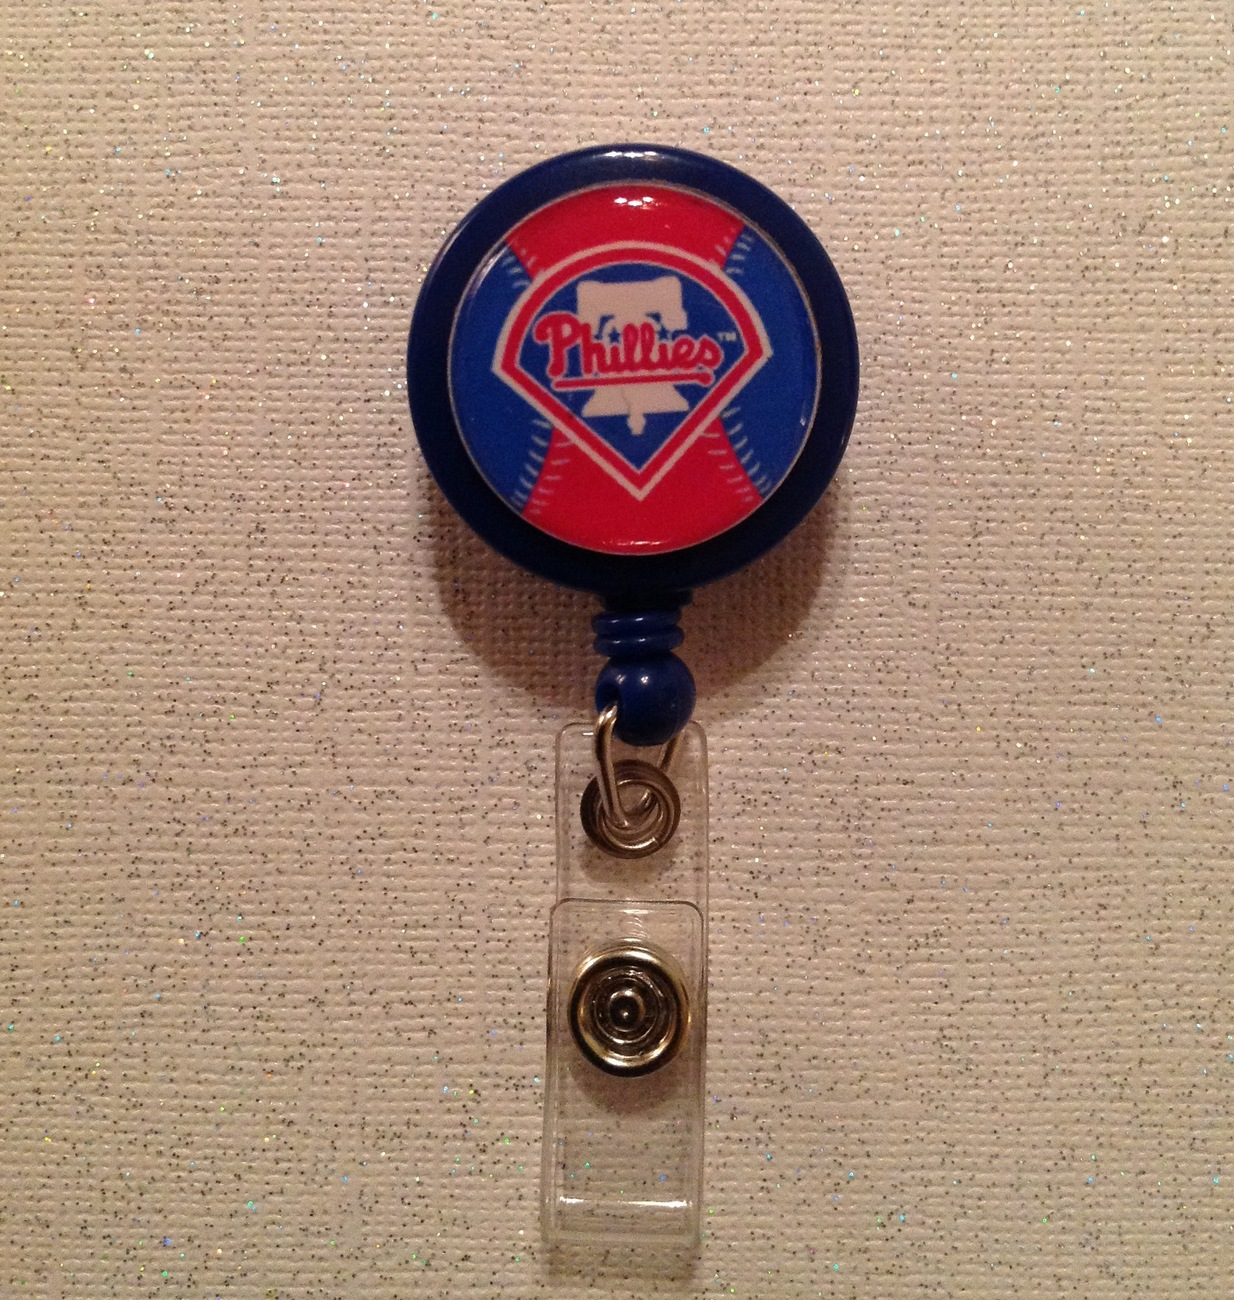 Mlb Phillies Badge Reel Id Holder blue alligator clip handmade new